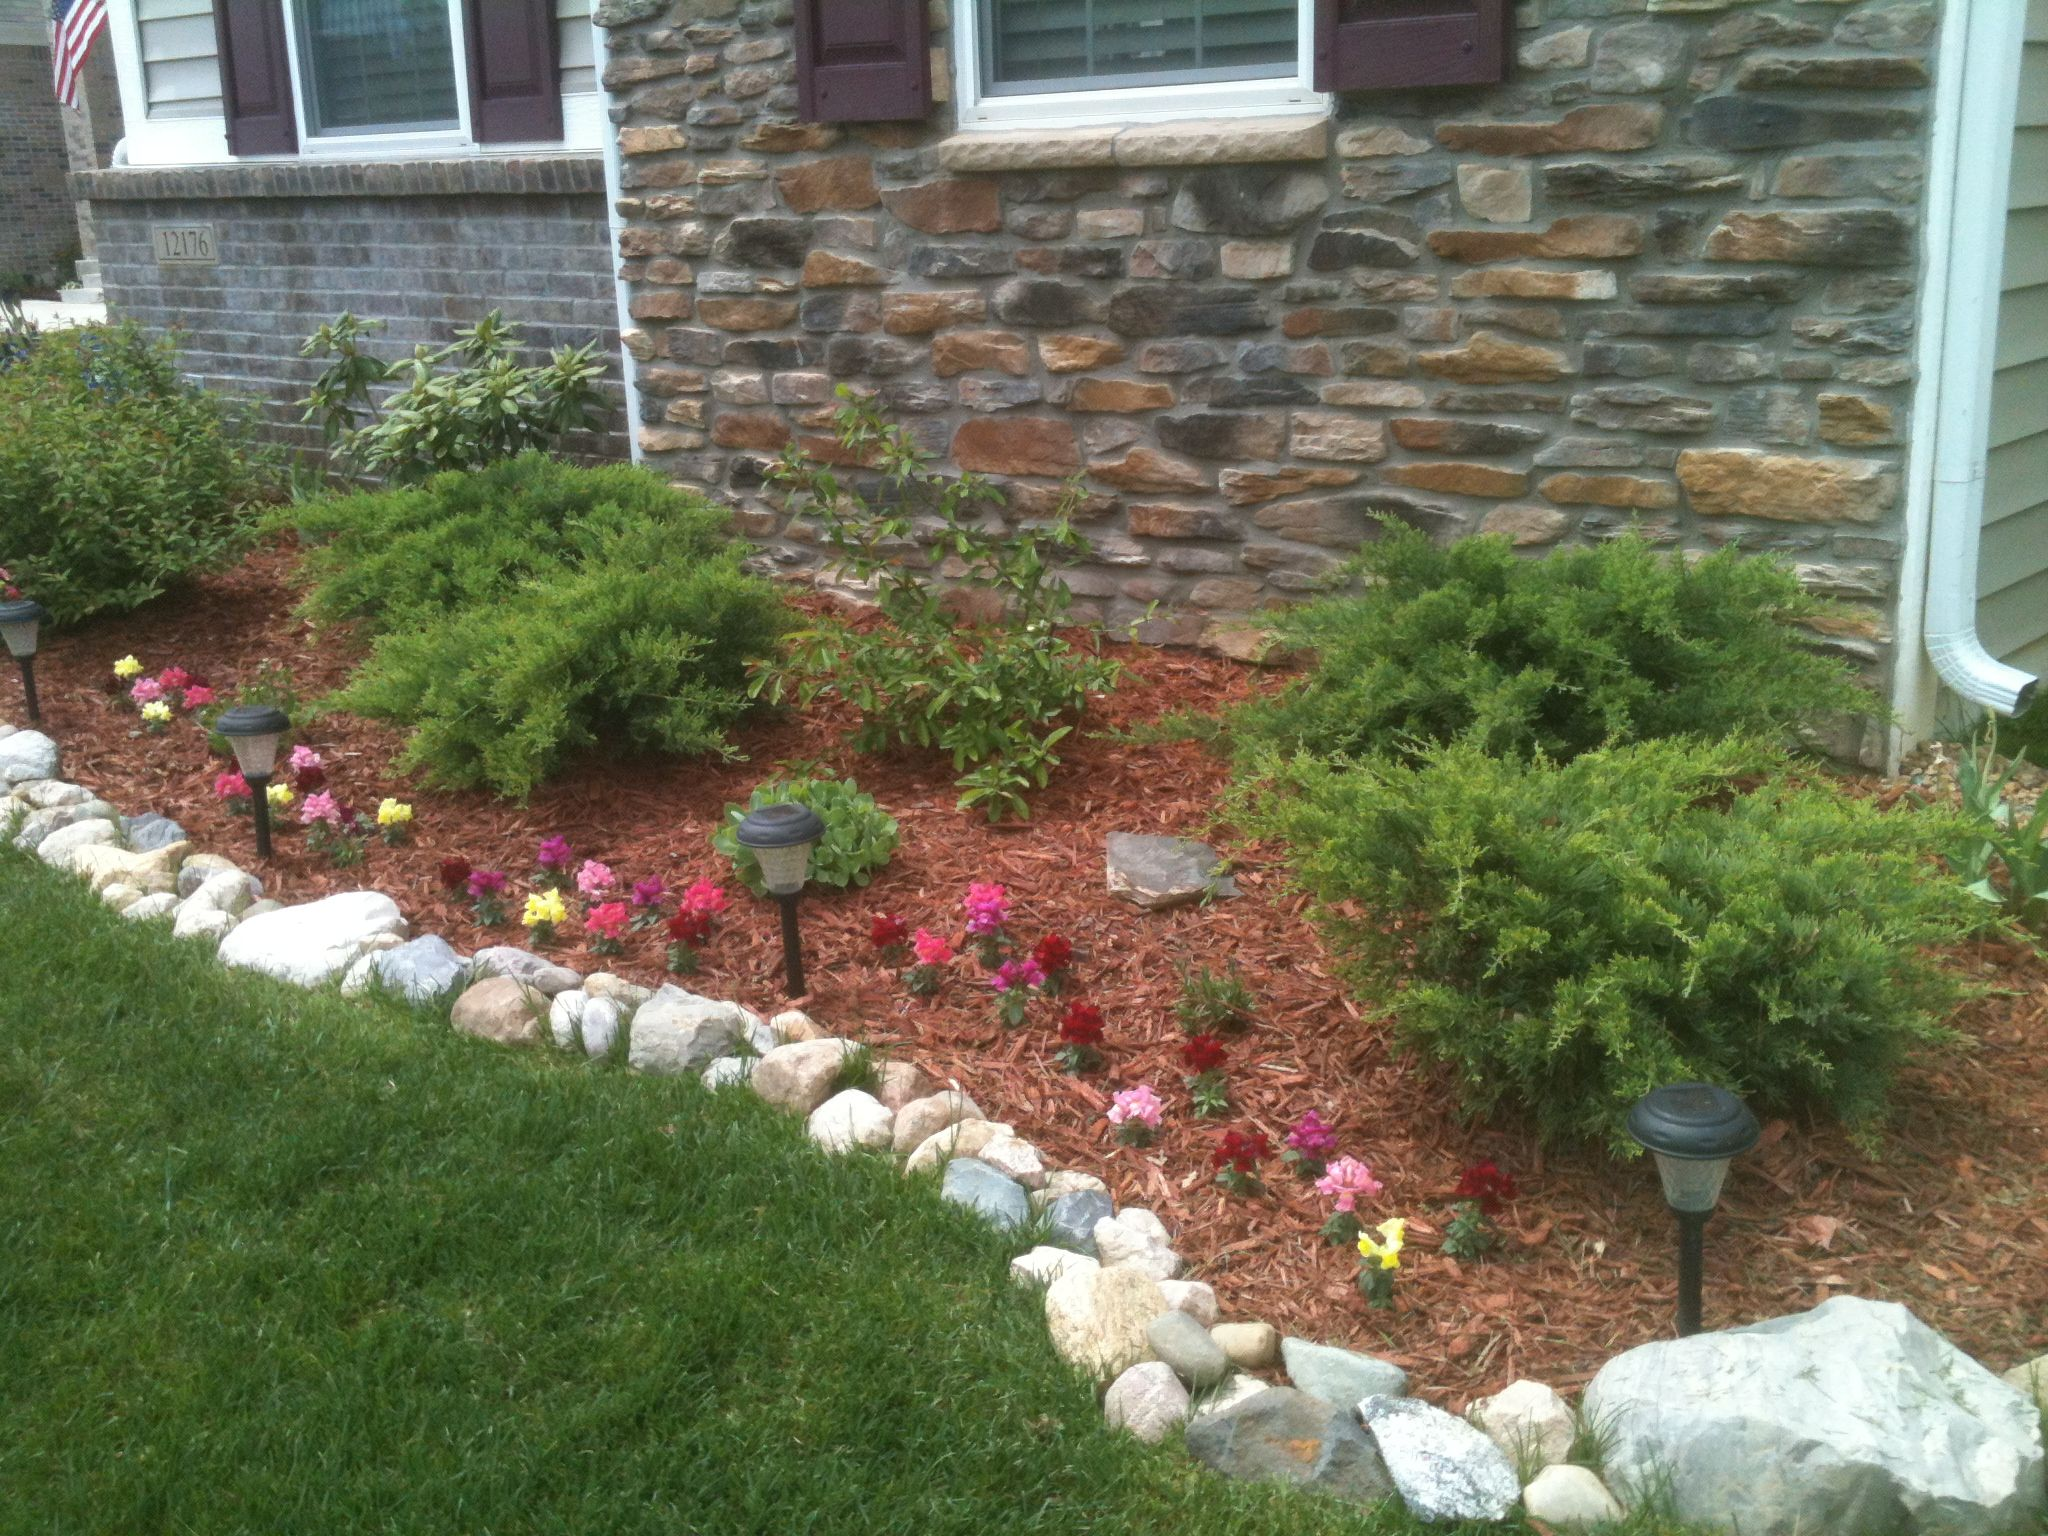 How To Build Curbing Forms In Concrete Sidewalk Landscaping Front Yard Landscaping Yard Landscaping